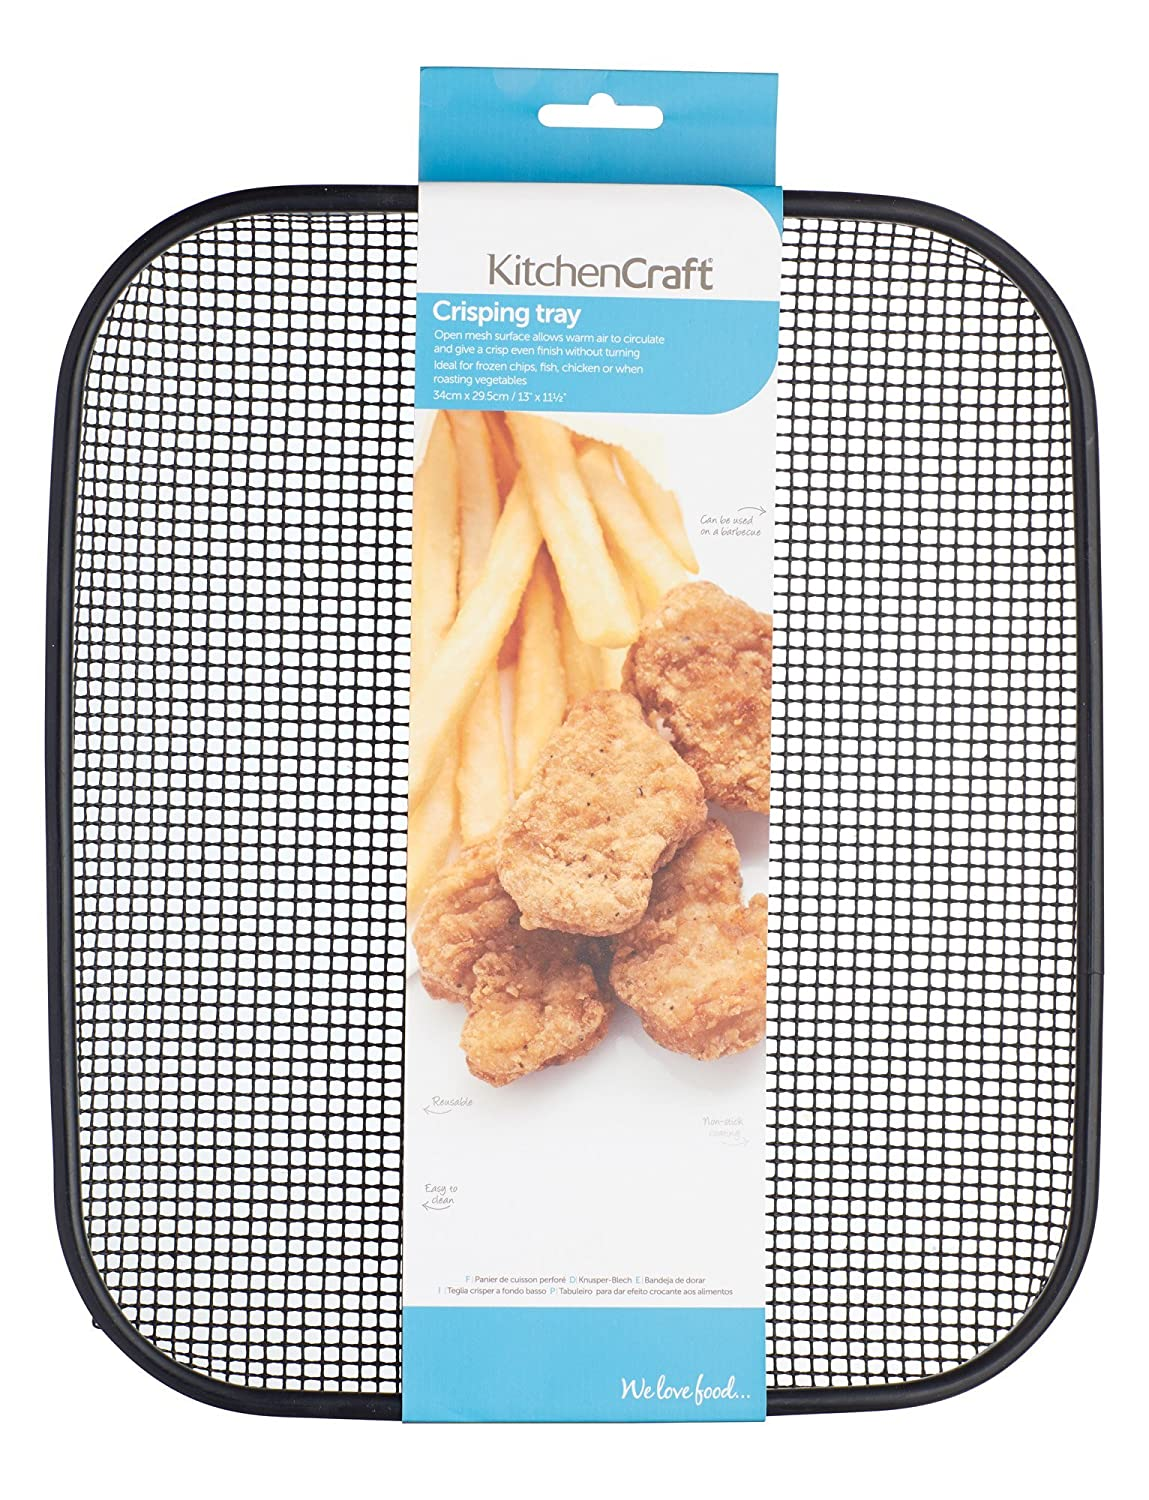 Amazon.com: KitchenCraft Wire Mesh Chip-Crisping Baking Tray, 34 x 29.5 cm (13.5